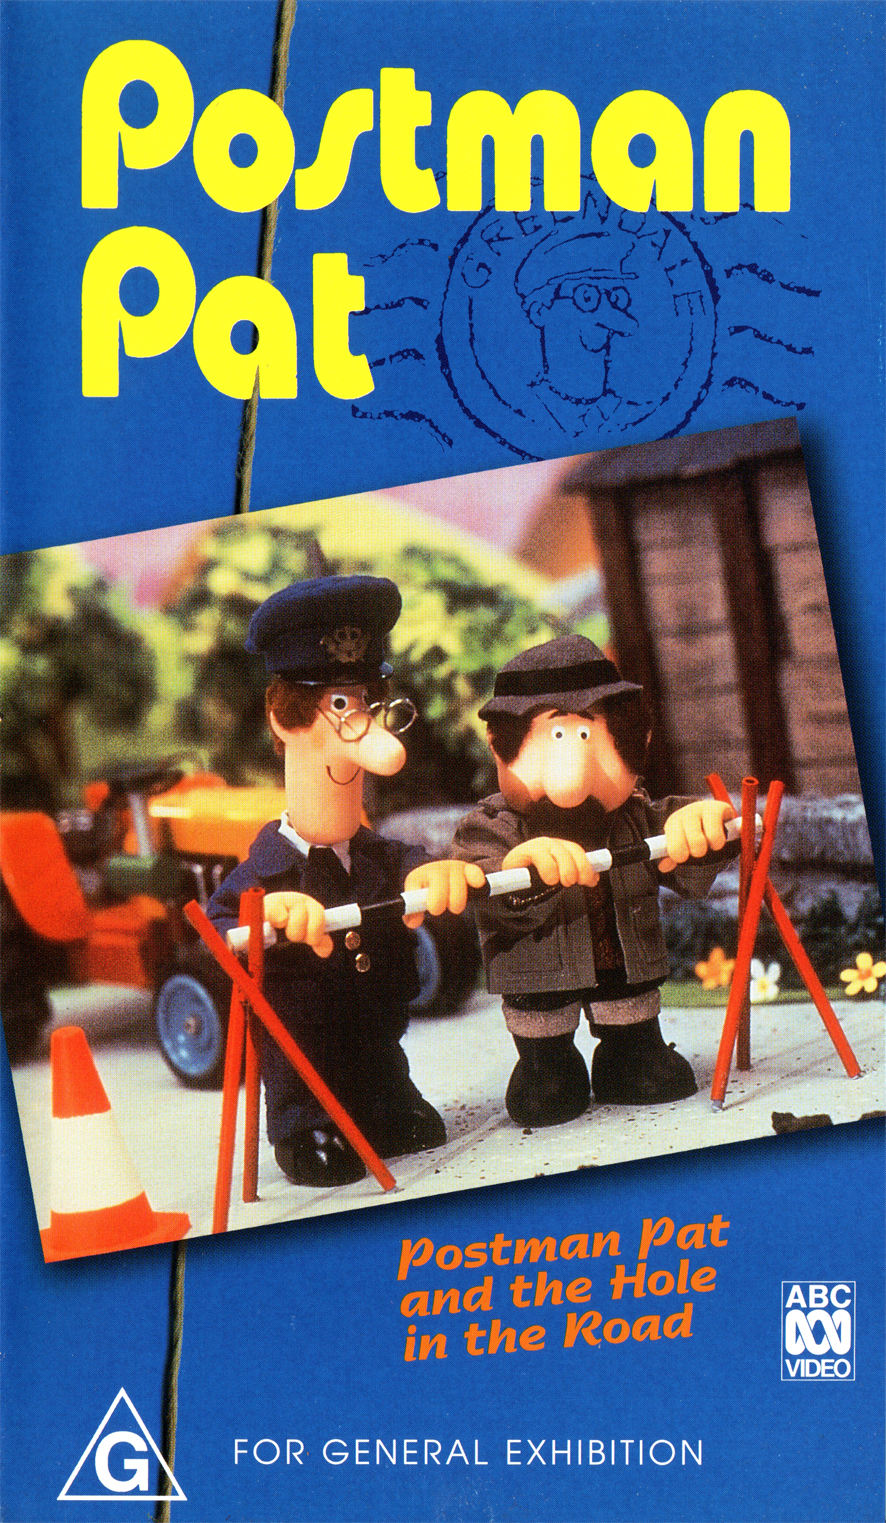 Postman Pat and the Hole in the Road (video)